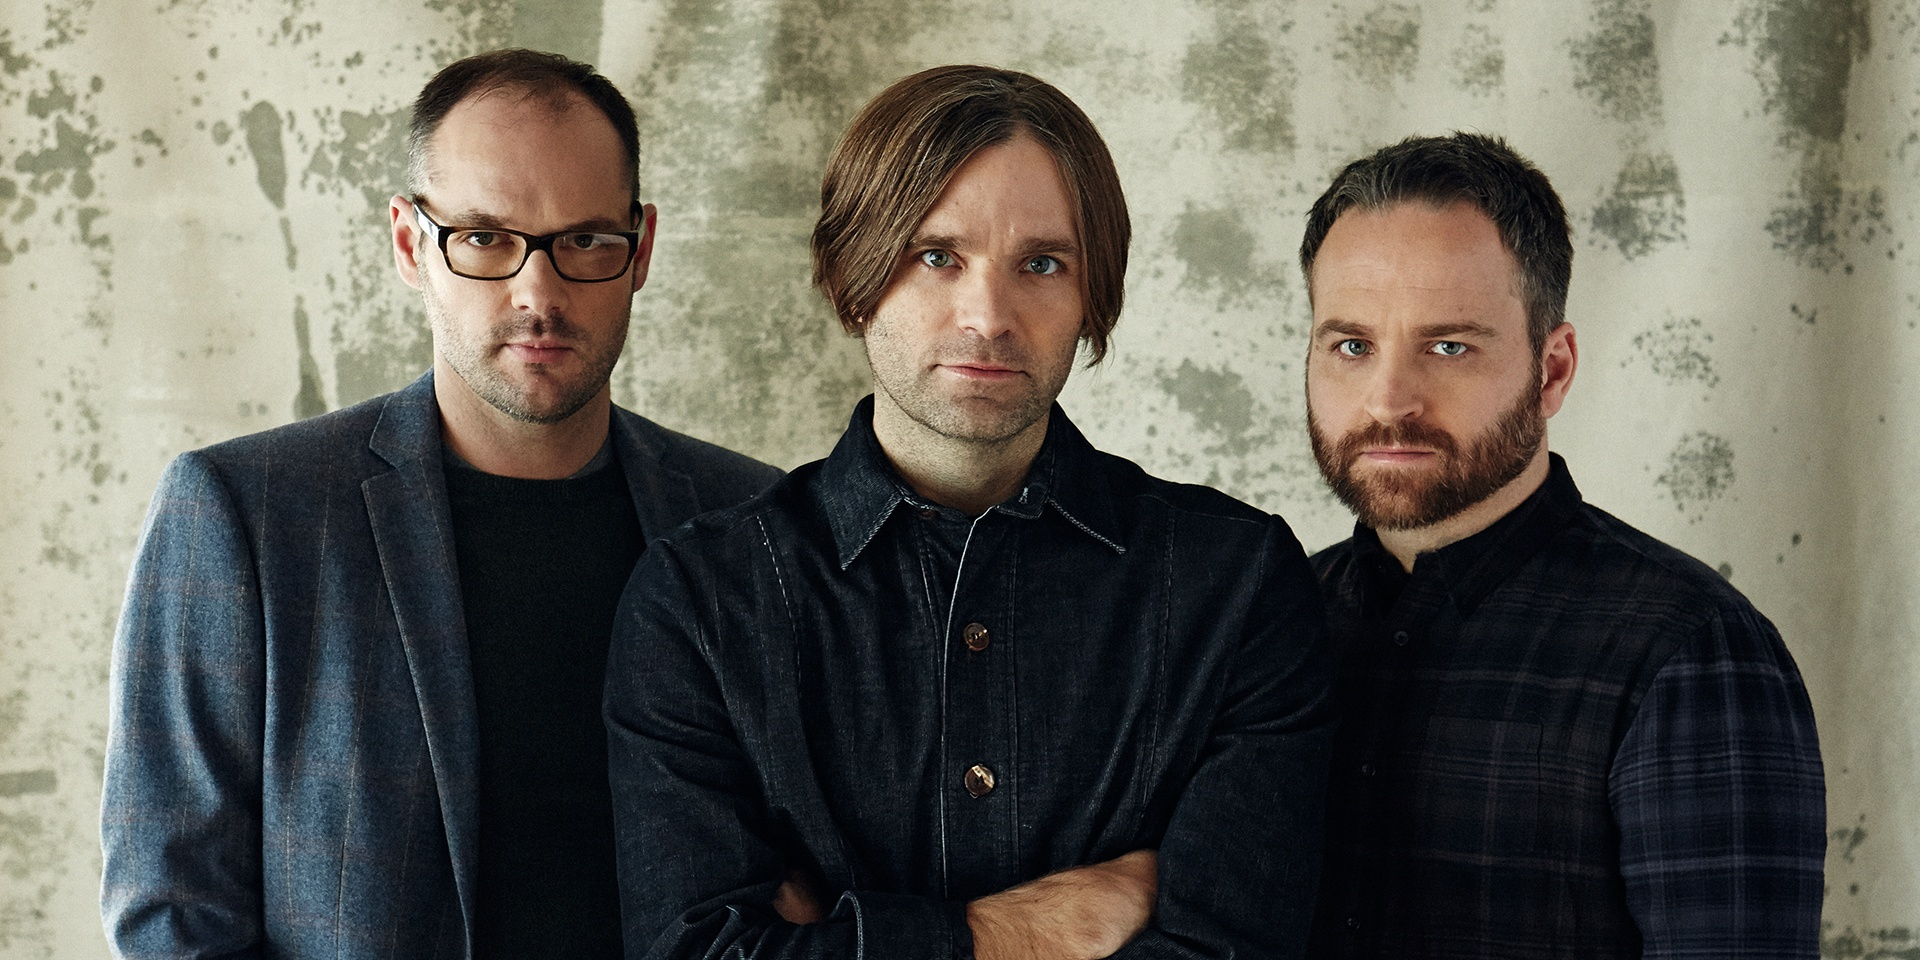 """WATCH: Death Cab for Cutie's Jason McGerr talks about """"humbling"""" Asian tours, moving forward and more"""